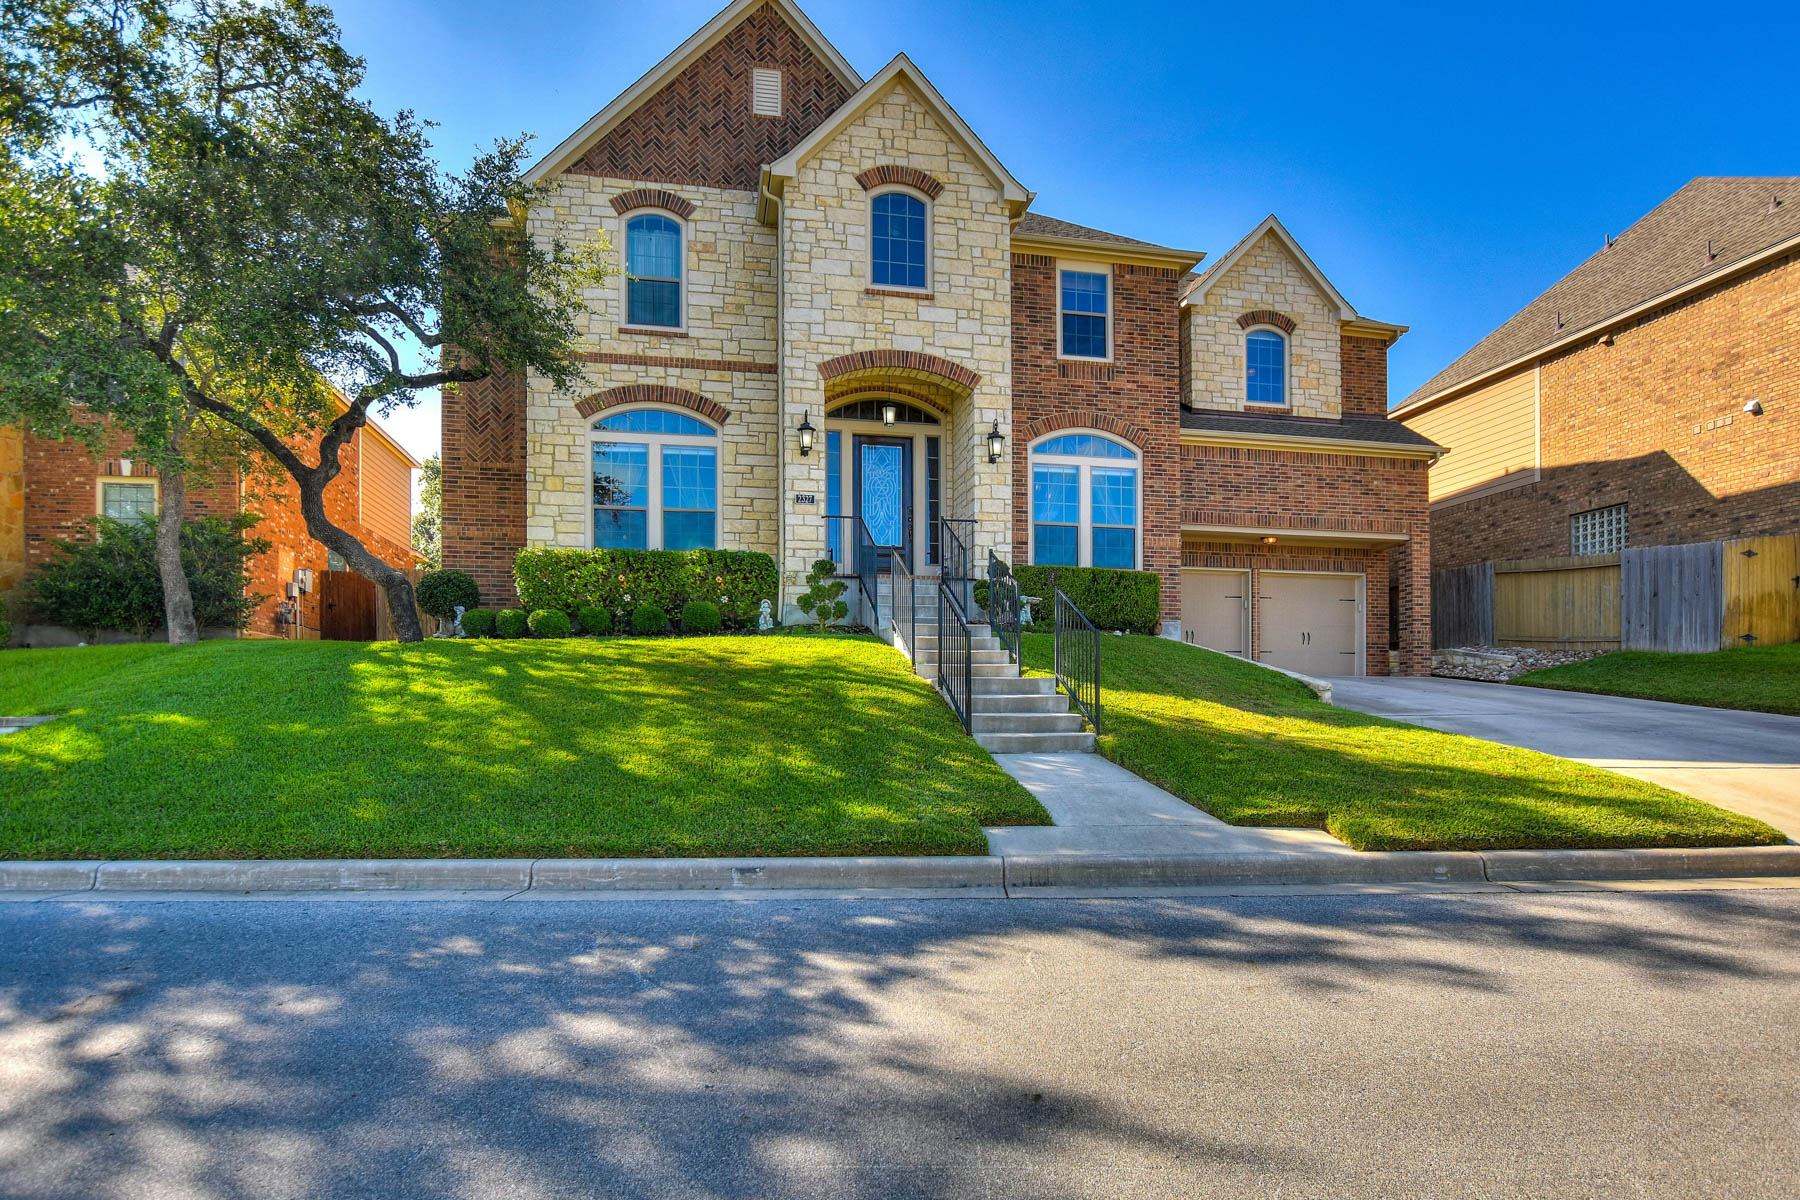 Single Family Home for Sale at Amazing Home Loaded with Upgrades in New Braunfels 2327 Oak Run Pkwy New Braunfels, Texas 78132 United States